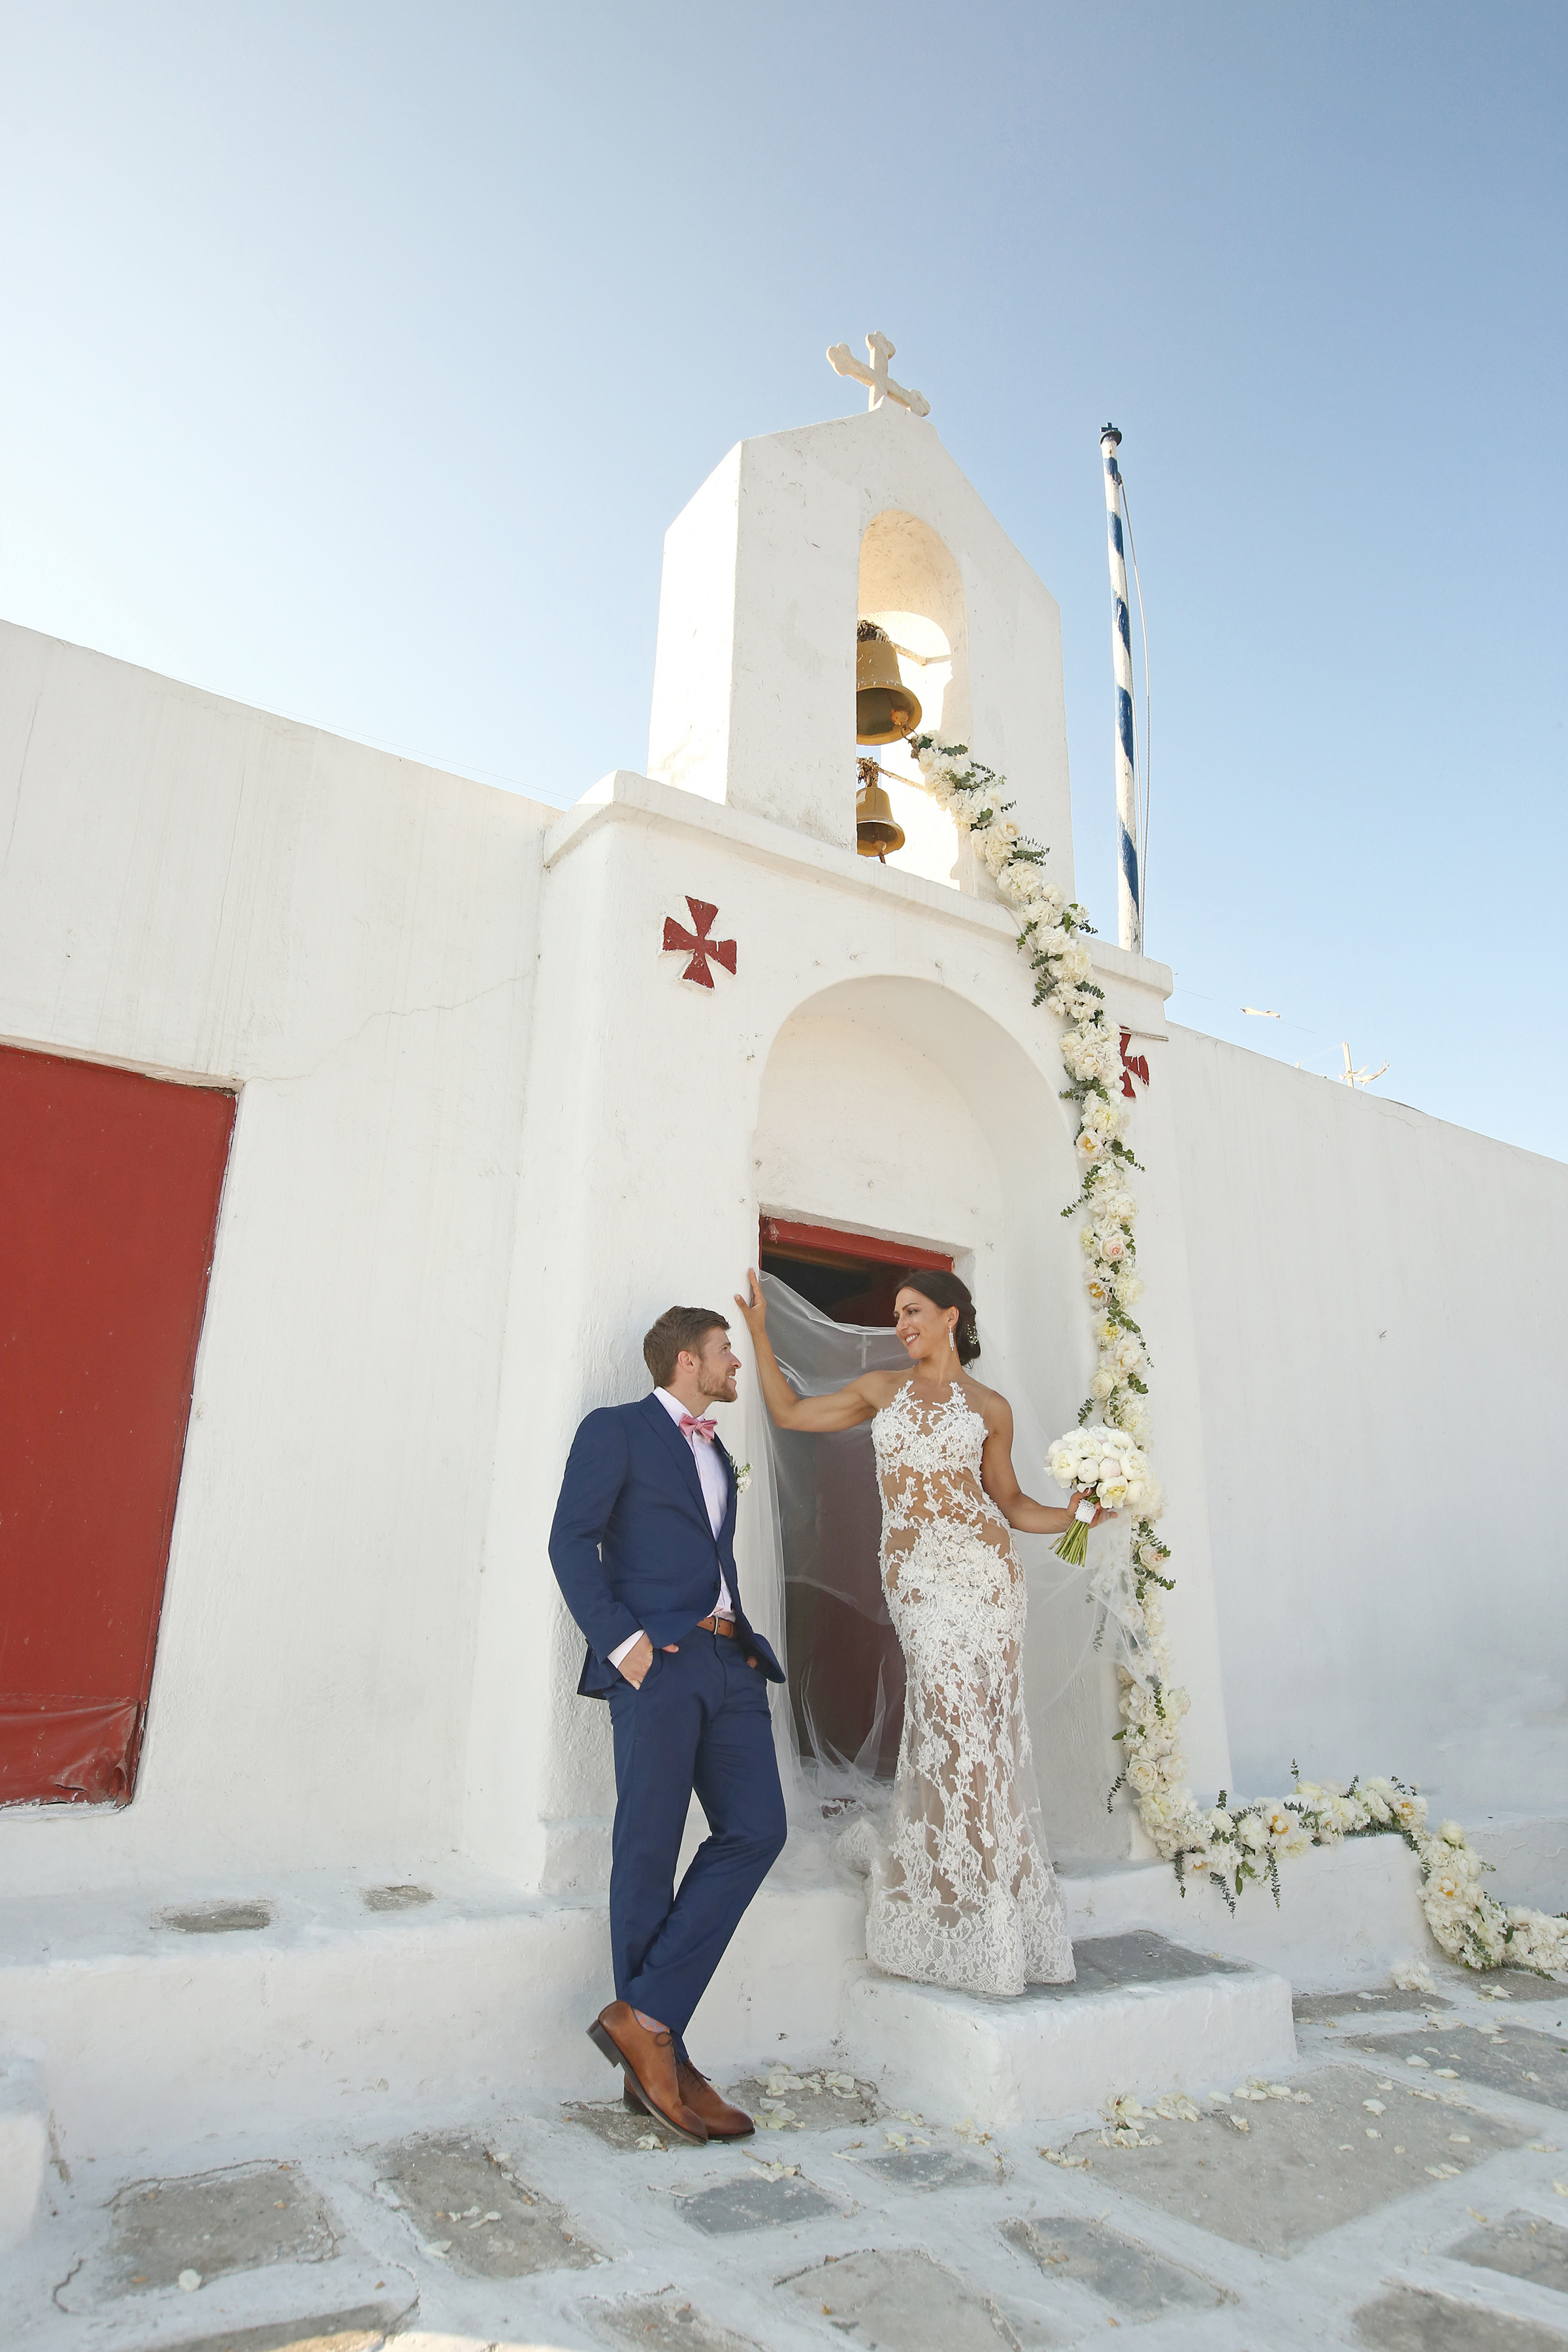 Bride and groom outside of church - photo by Kenny Kim Photography